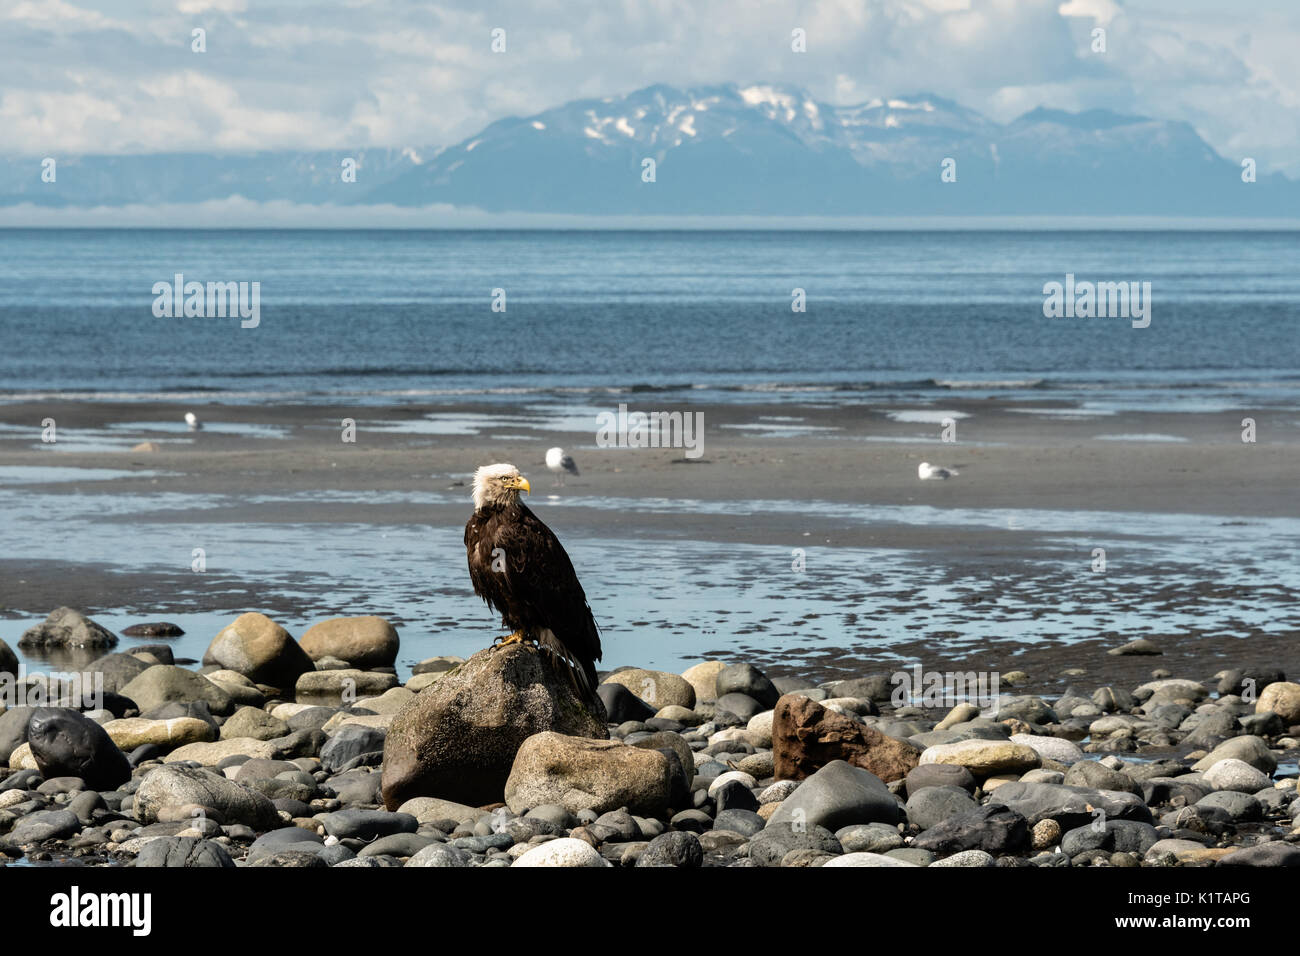 An adult bald eagle perched on a rock looking toward the Chigmit Mountains along the beach on the Cook Inlet at Anchor Point, Alaska. - Stock Image